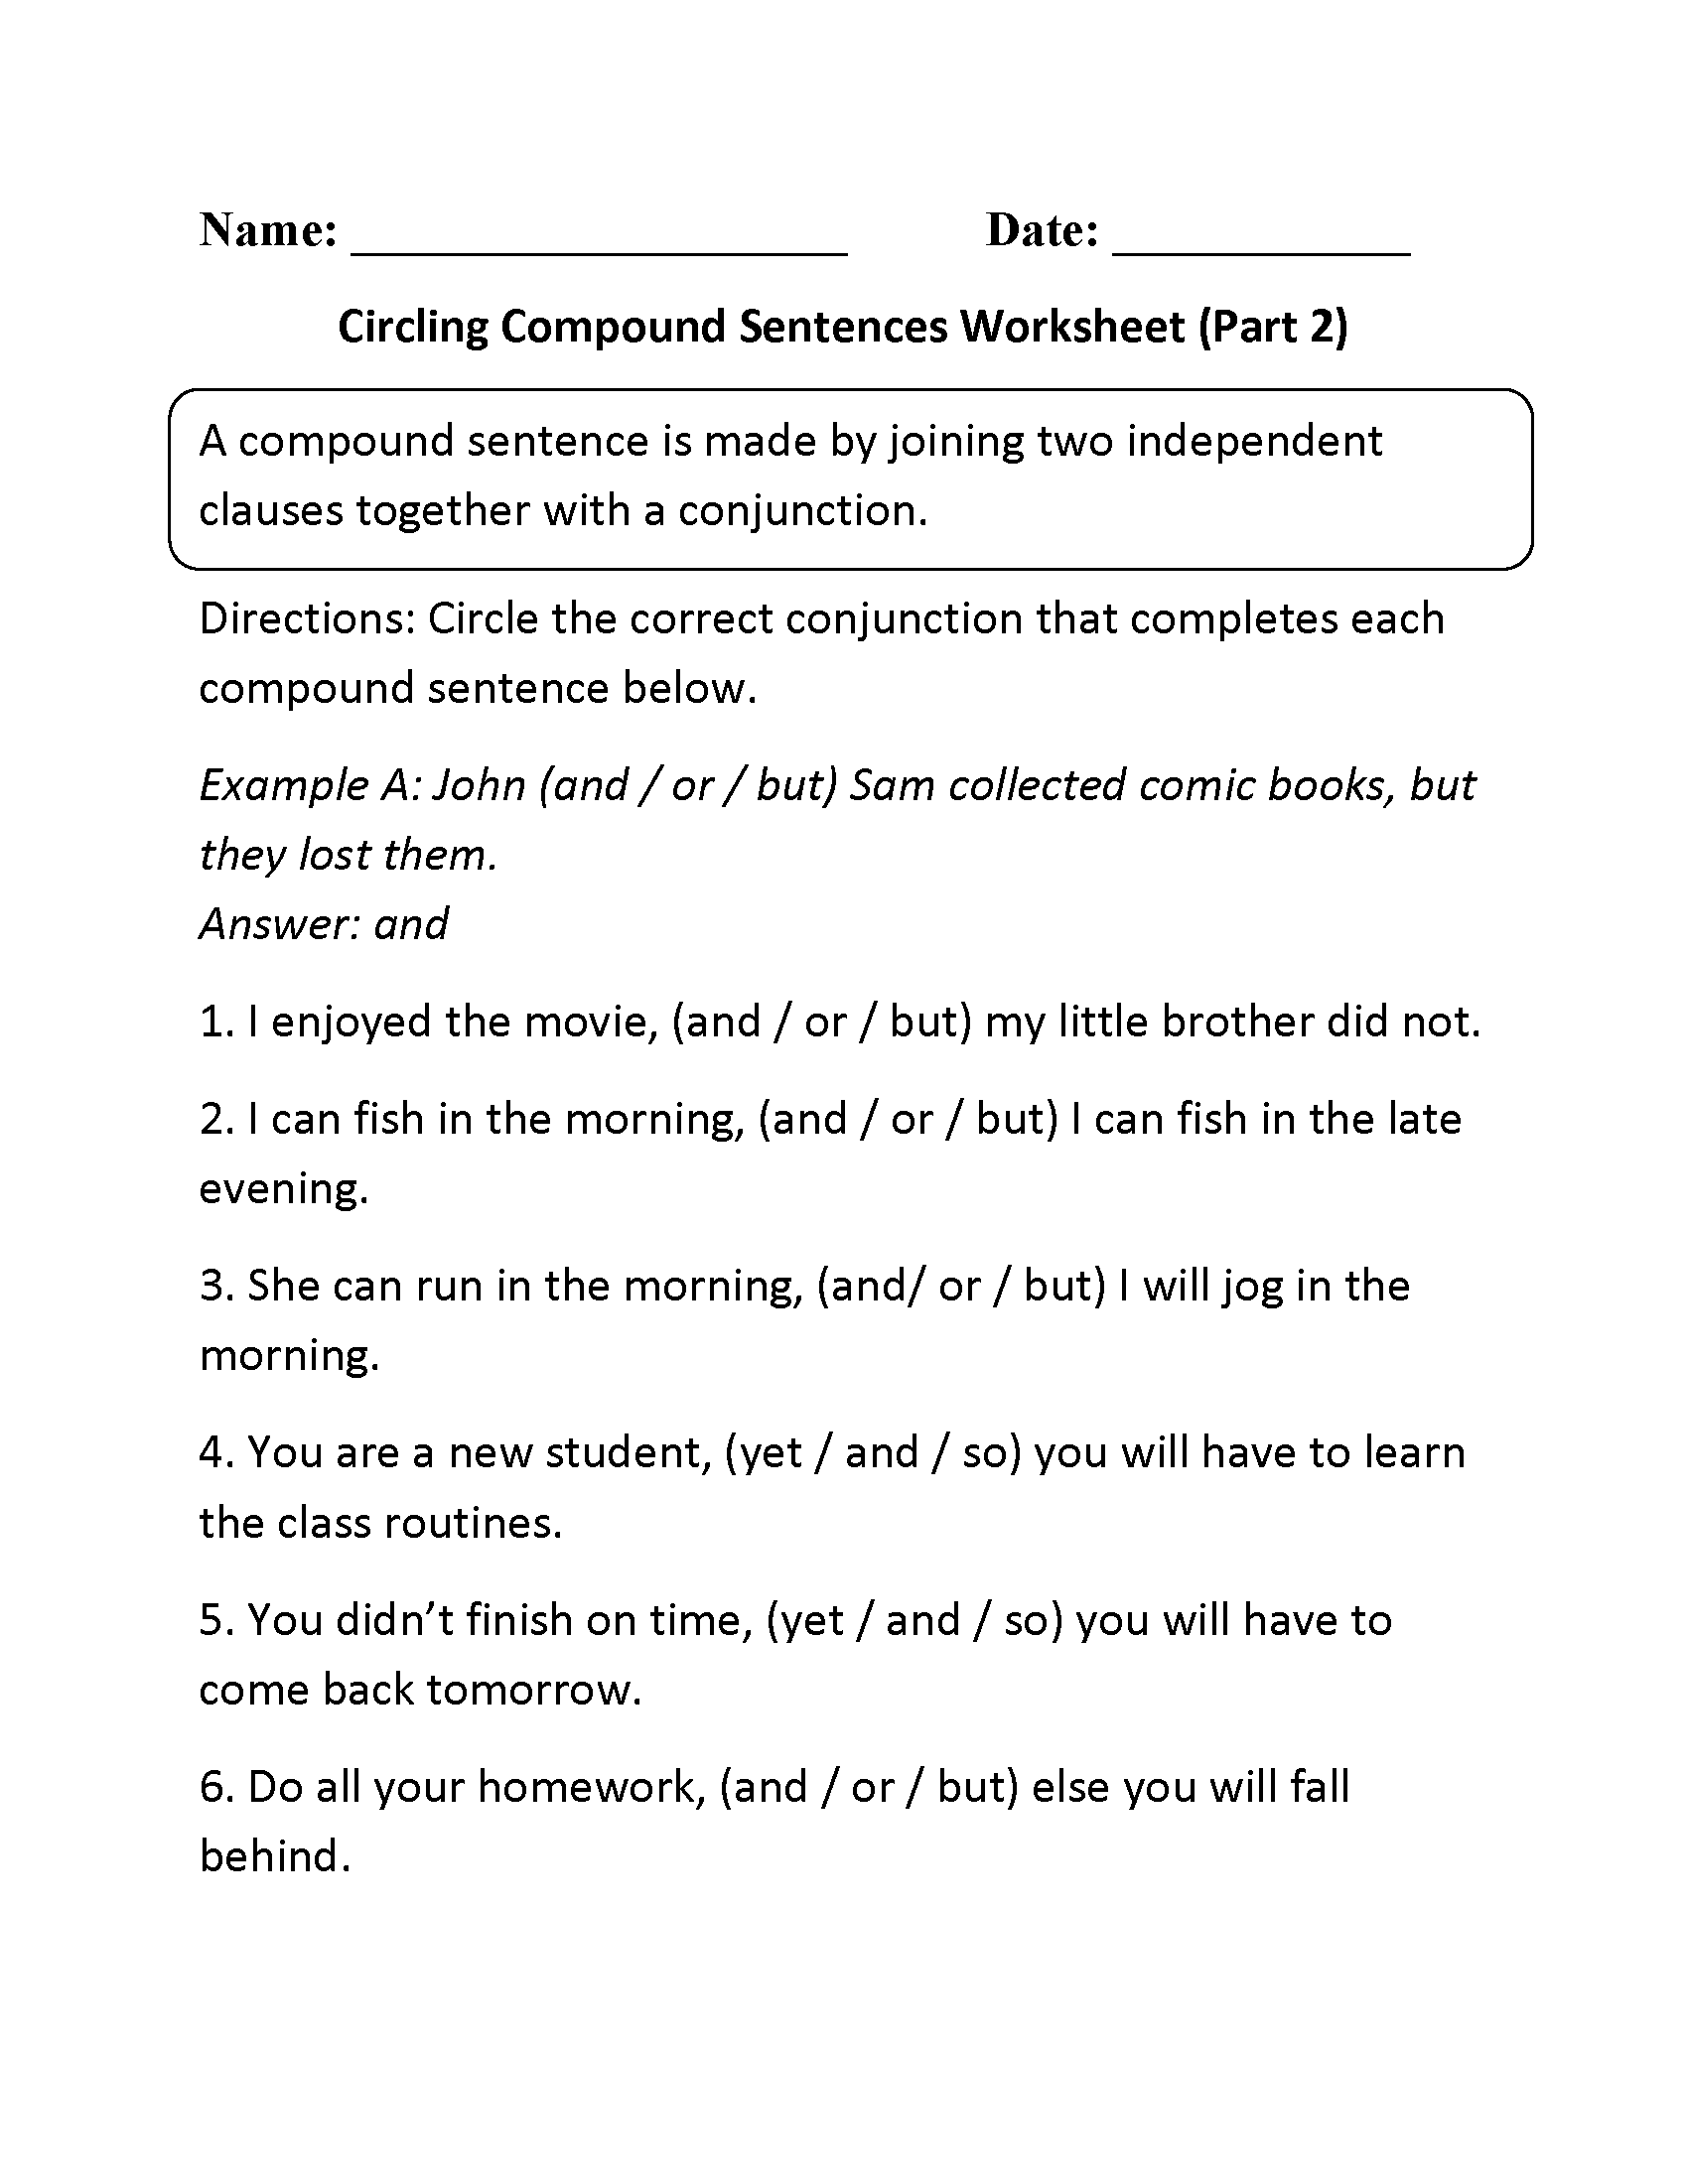 Compound Sentences Worksheets | Circling Compound Sentences ...